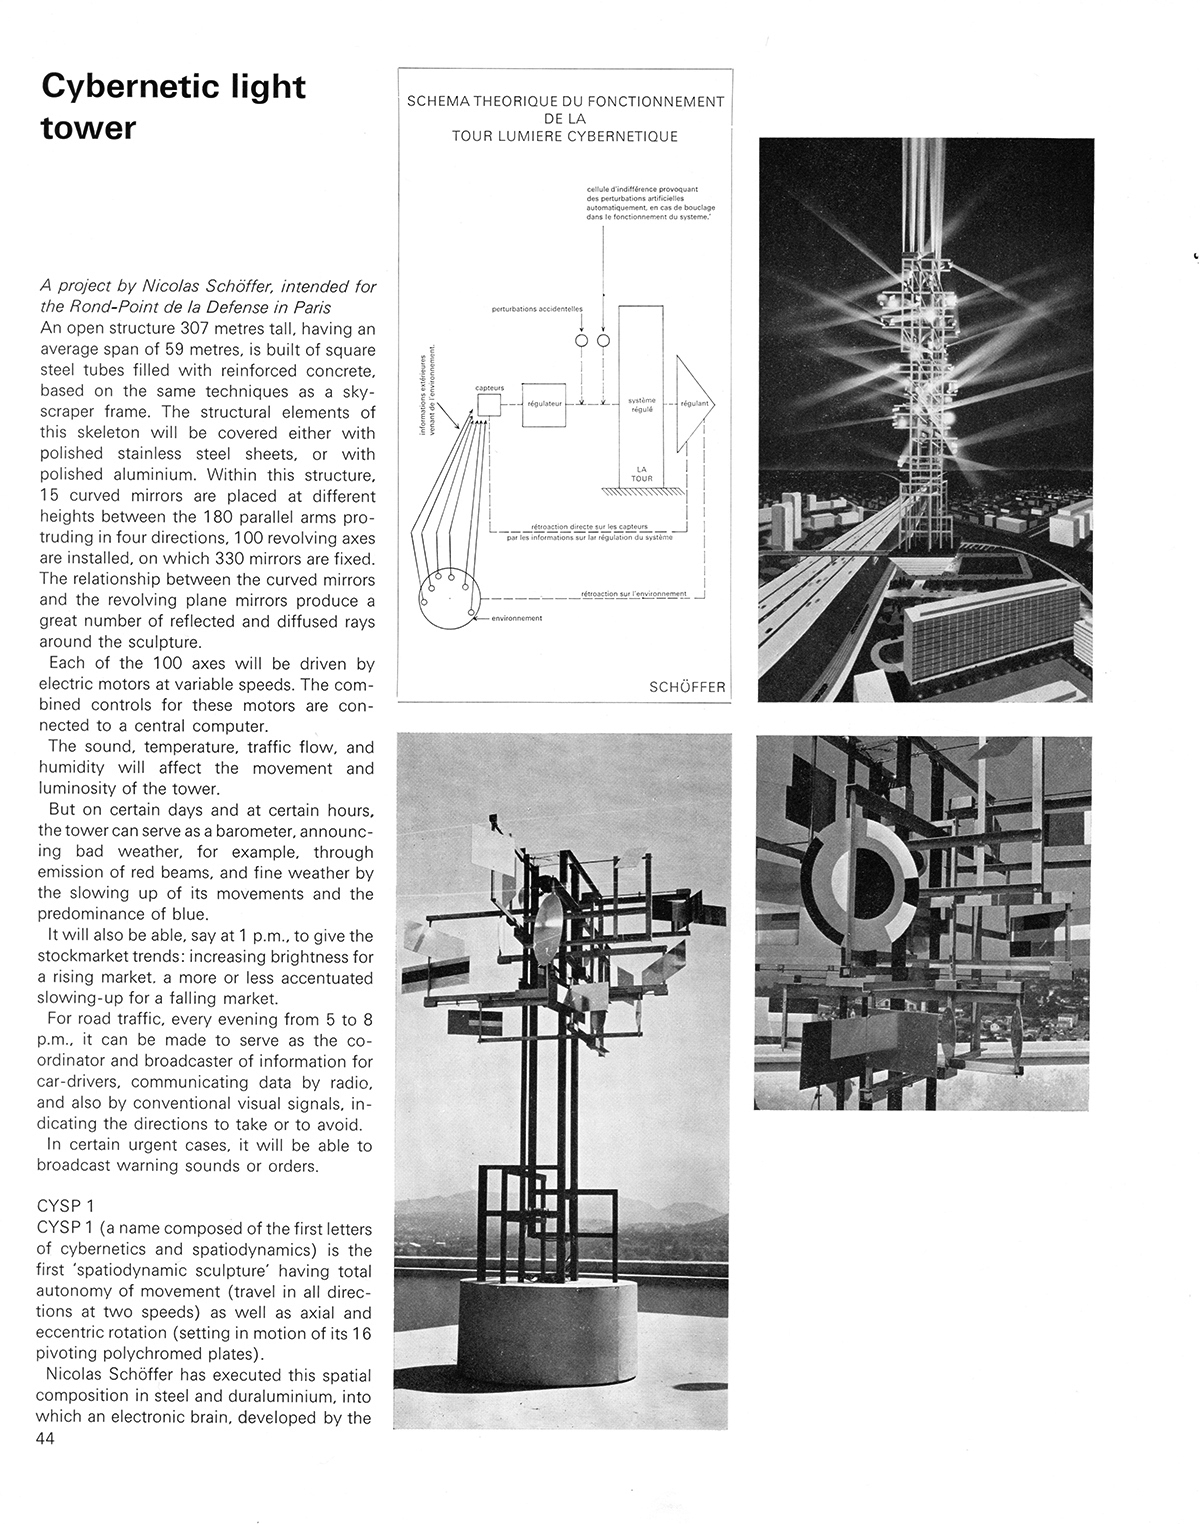 Cybernetic light tower. Cybernetic Serendipity: The Computer and the Arts, Studio International Special Issue, 1968, page 44.